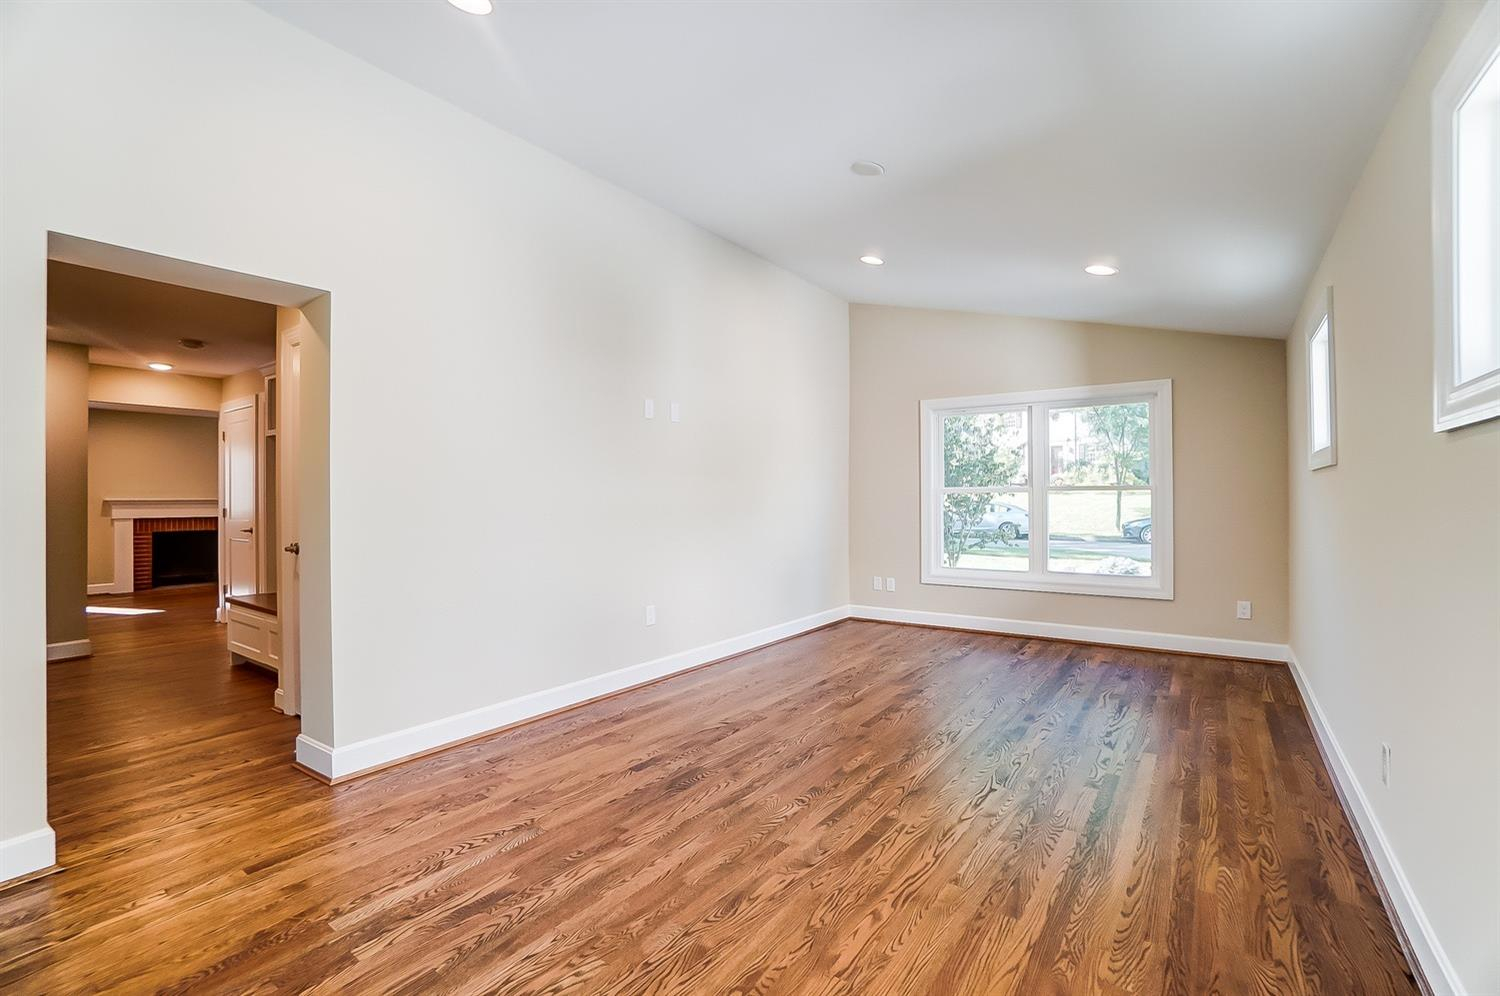 1st floor, alternate view of Bonus Room with tech wiring on wall. Open doorway to 1/2 bath, mudroom etc visible at left. Want more privacy, we think you could add a frosted multi-panel door here.